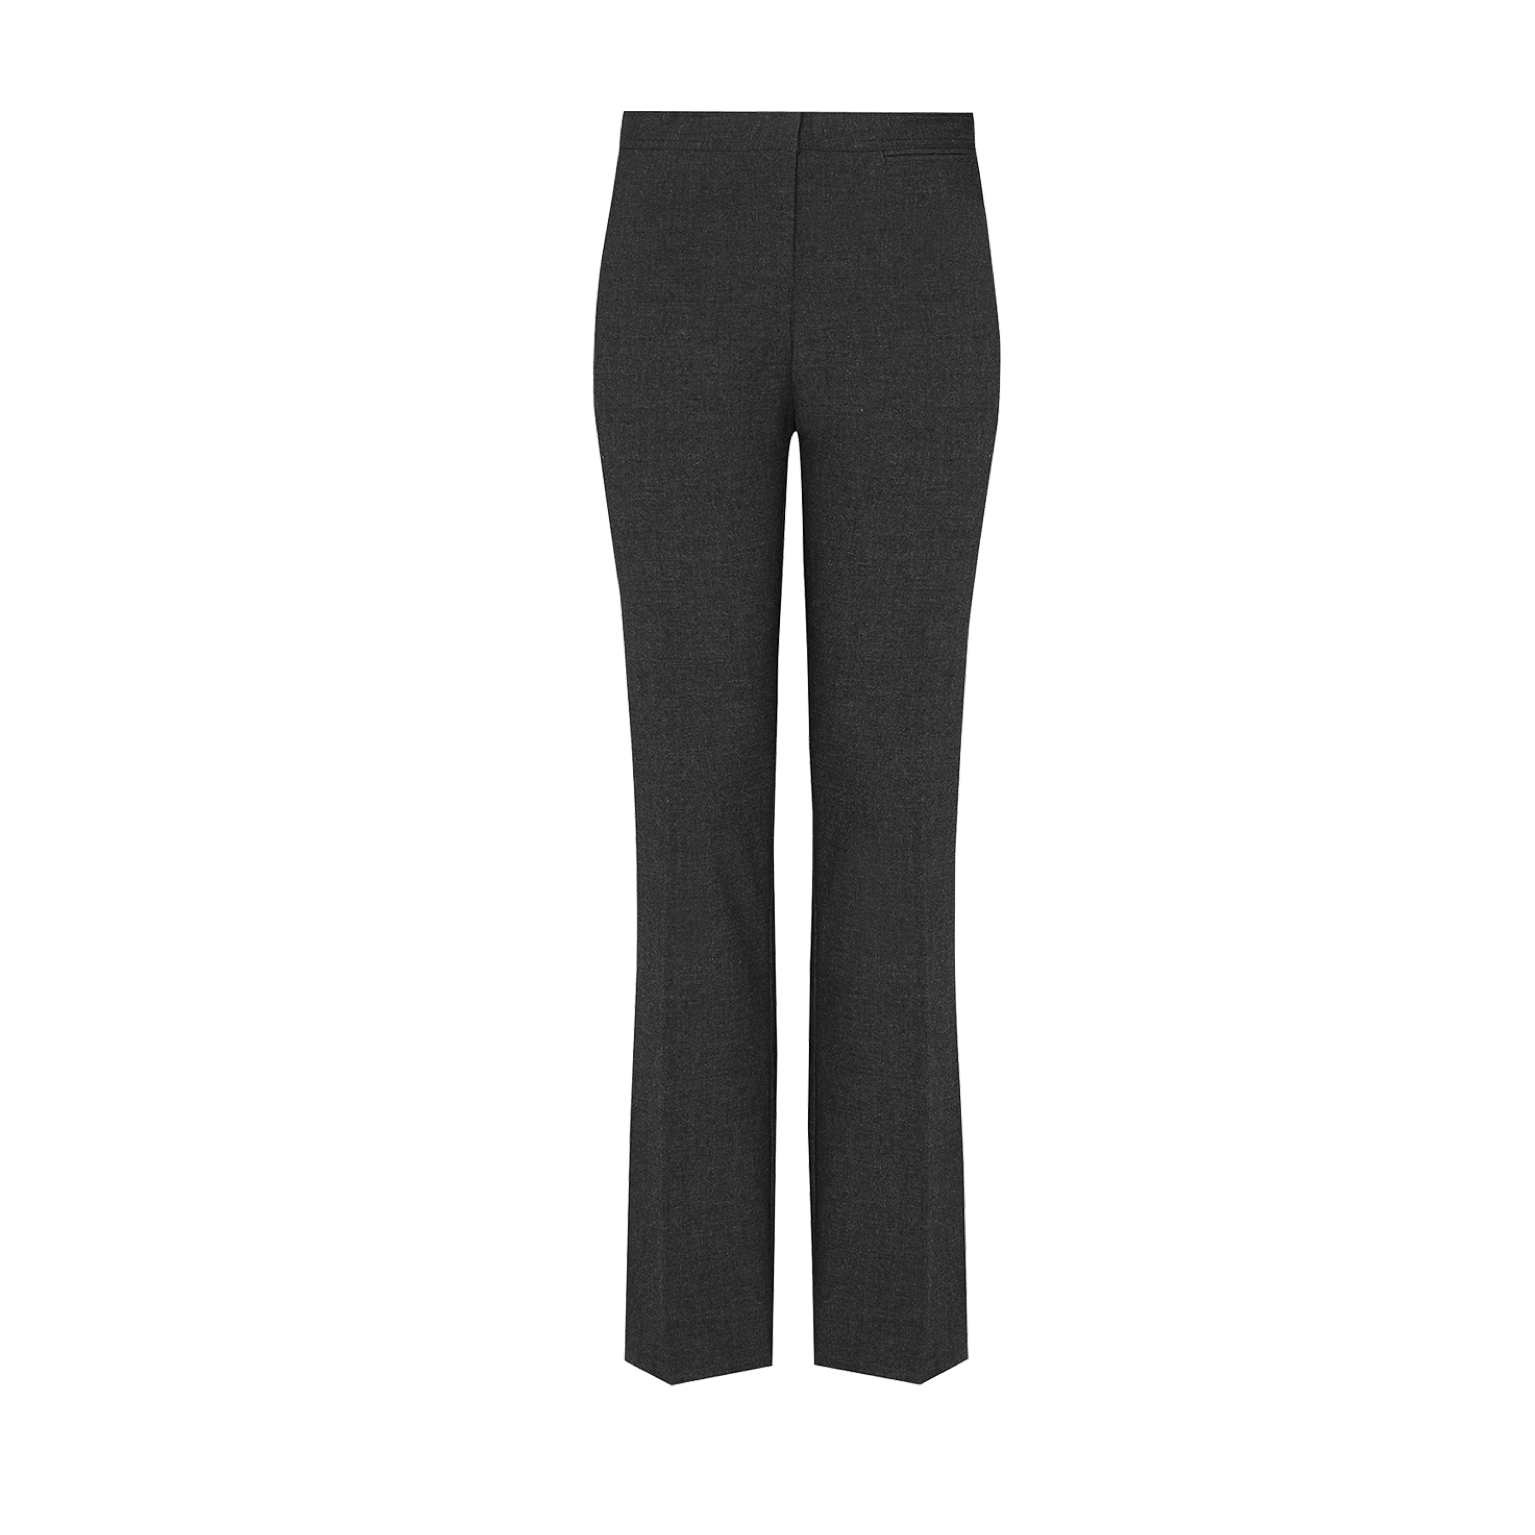 DL965 Girls' Black Trousers